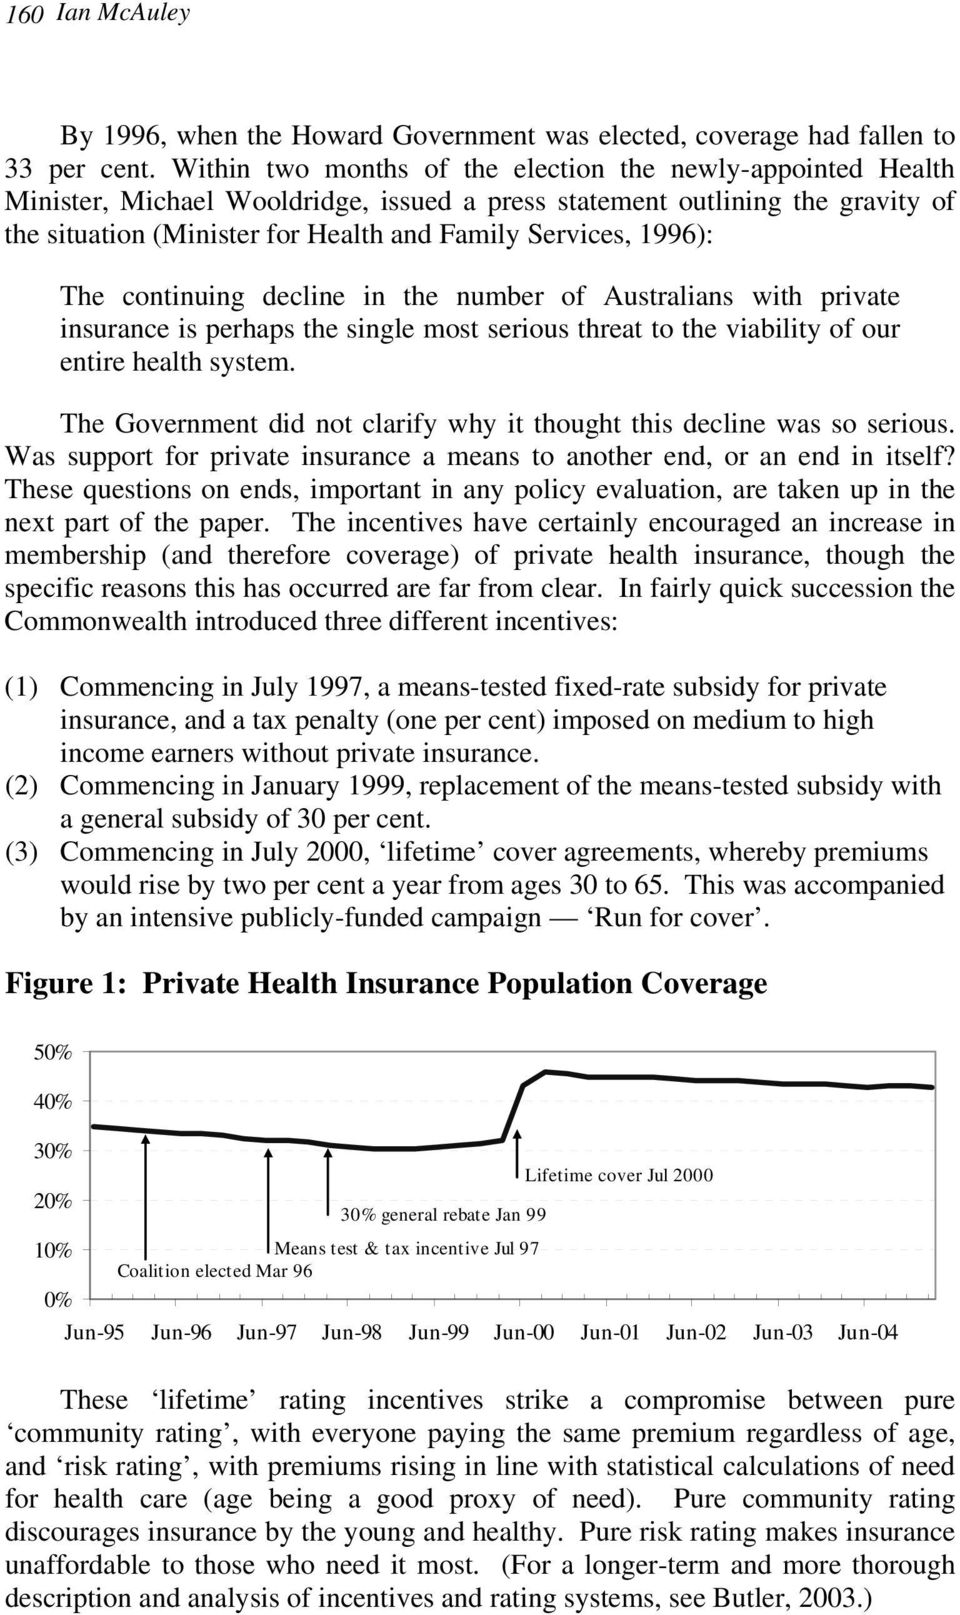 1996): The continuing decline in the number of Australians with private insurance is perhaps the single most serious threat to the viability of our entire health system.